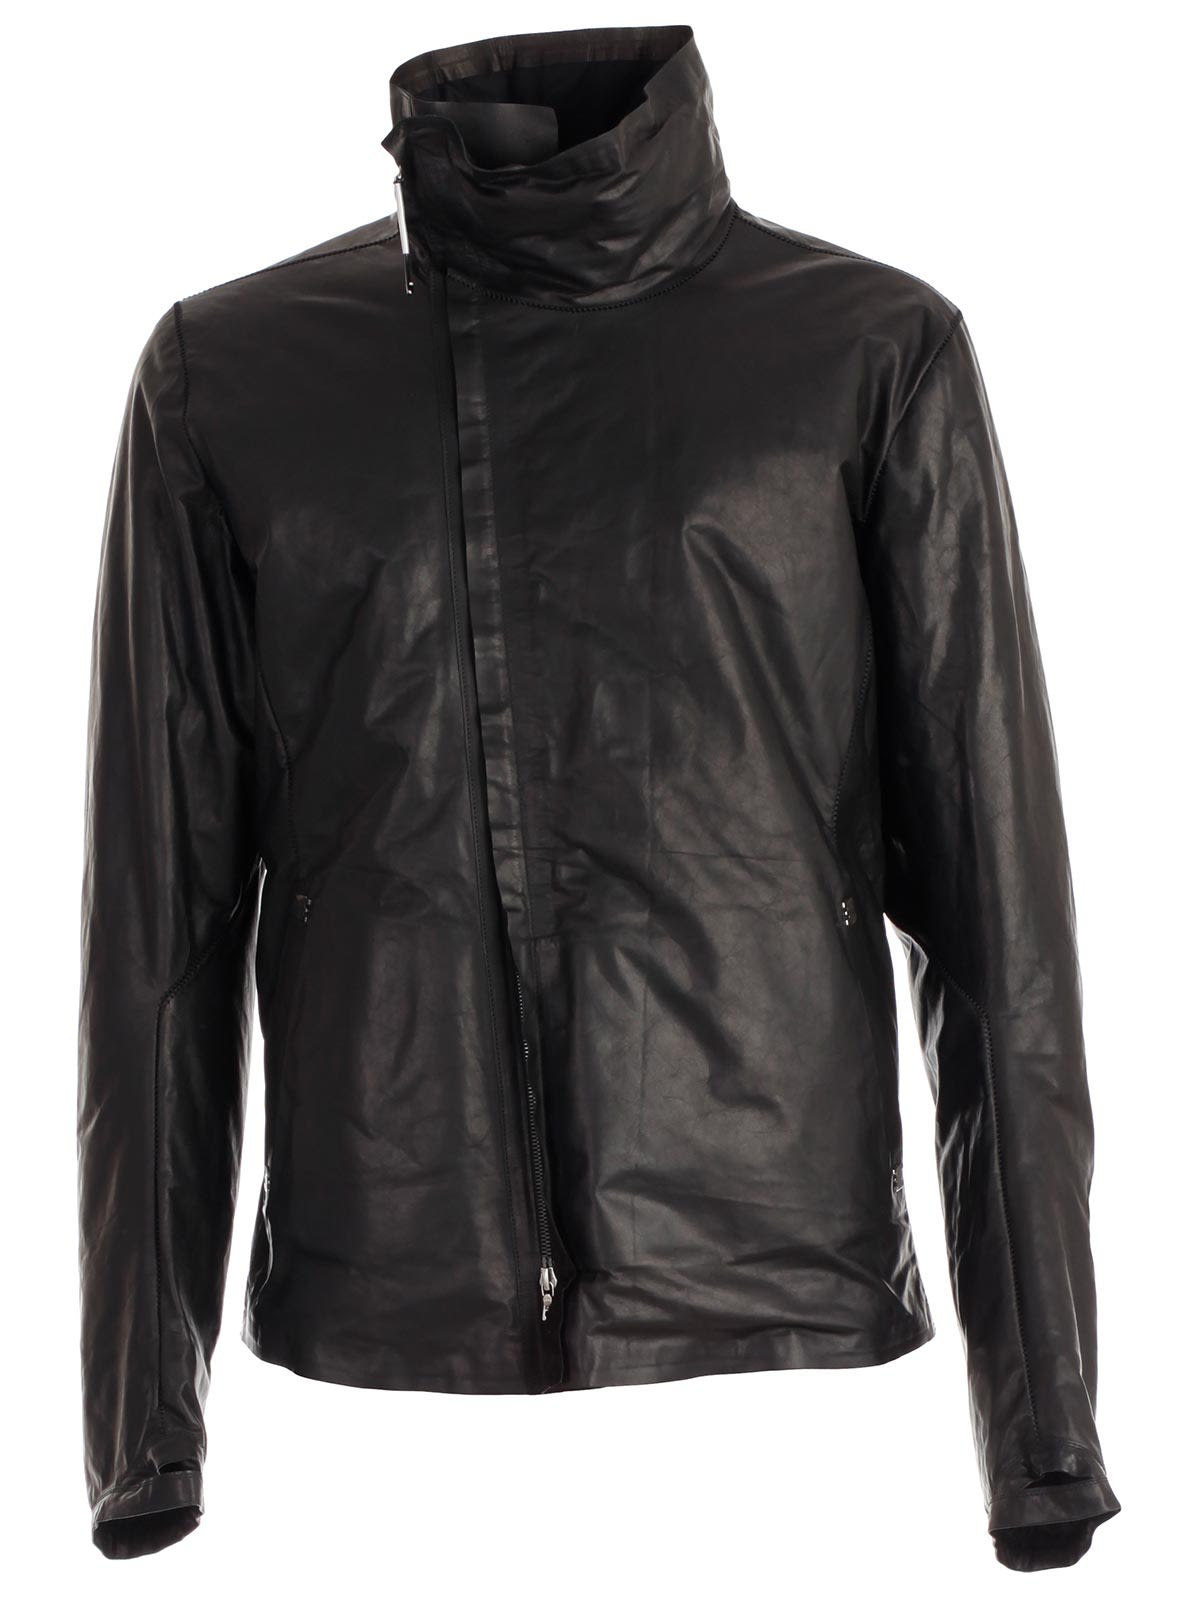 ISAAC SELLAM Zipped Leather Jacket in Hnoir